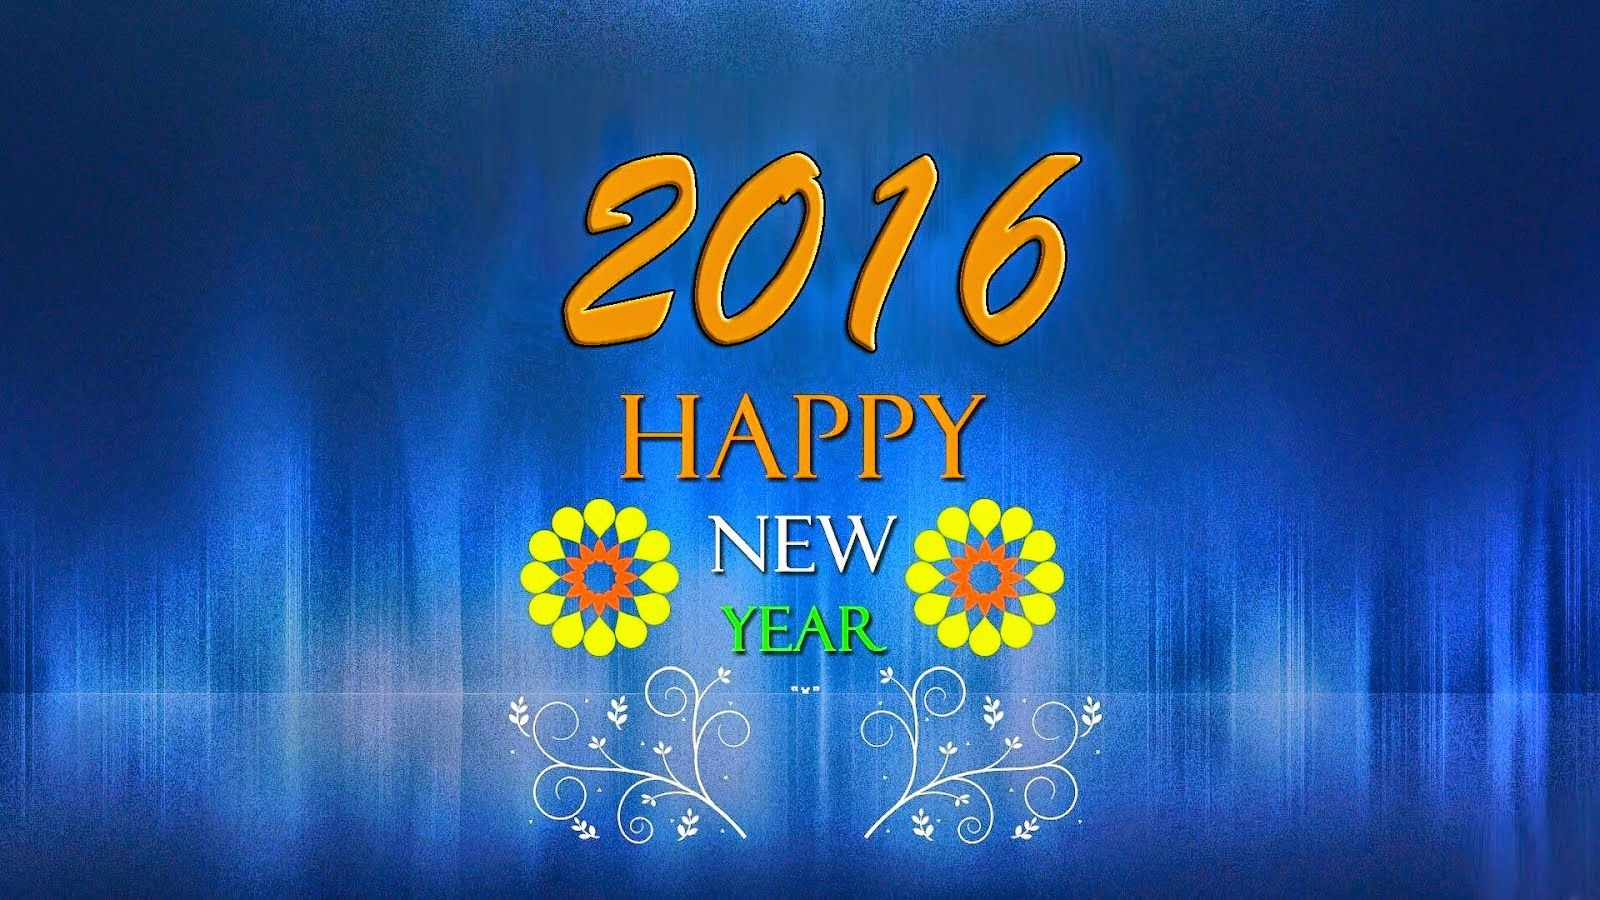 Happy new year 2016 new wallpapers and images download free happy new year 2016 new wallpapers and images download free kristyandbryce Image collections